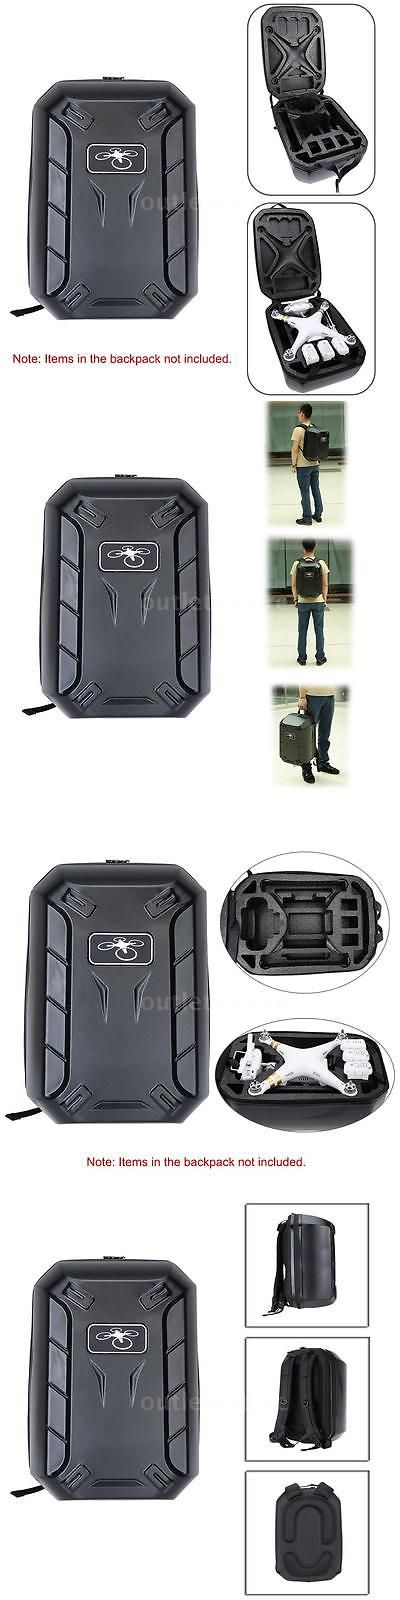 Other RC Parts and Accs 182213: Waterproof Shoulder Backpack Hard Case Bag For Dji Phantom 3 Professional Z9f0 -> BUY IT NOW ONLY: $33.8 on eBay!